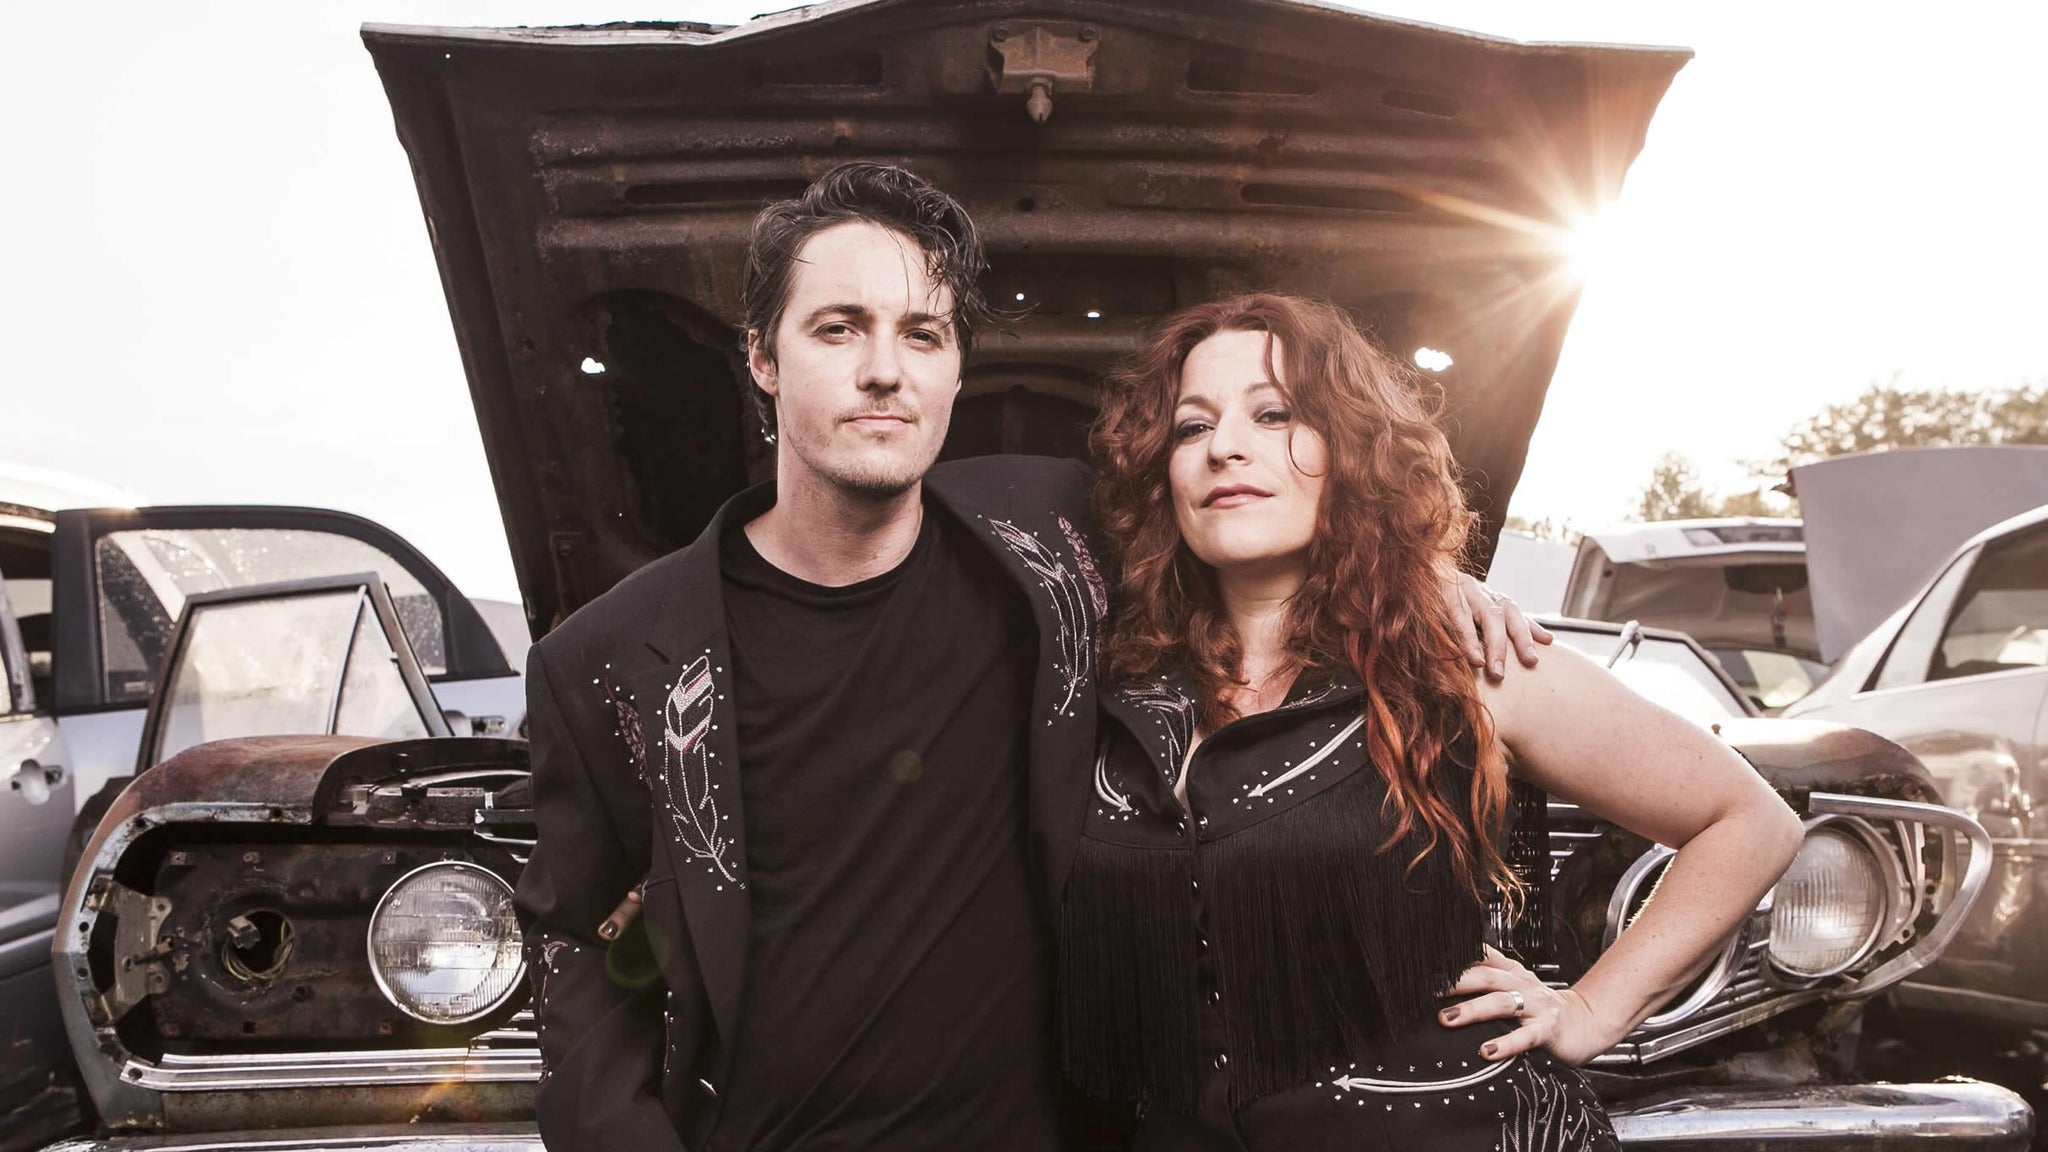 Shovels & Rope at The Fillmore